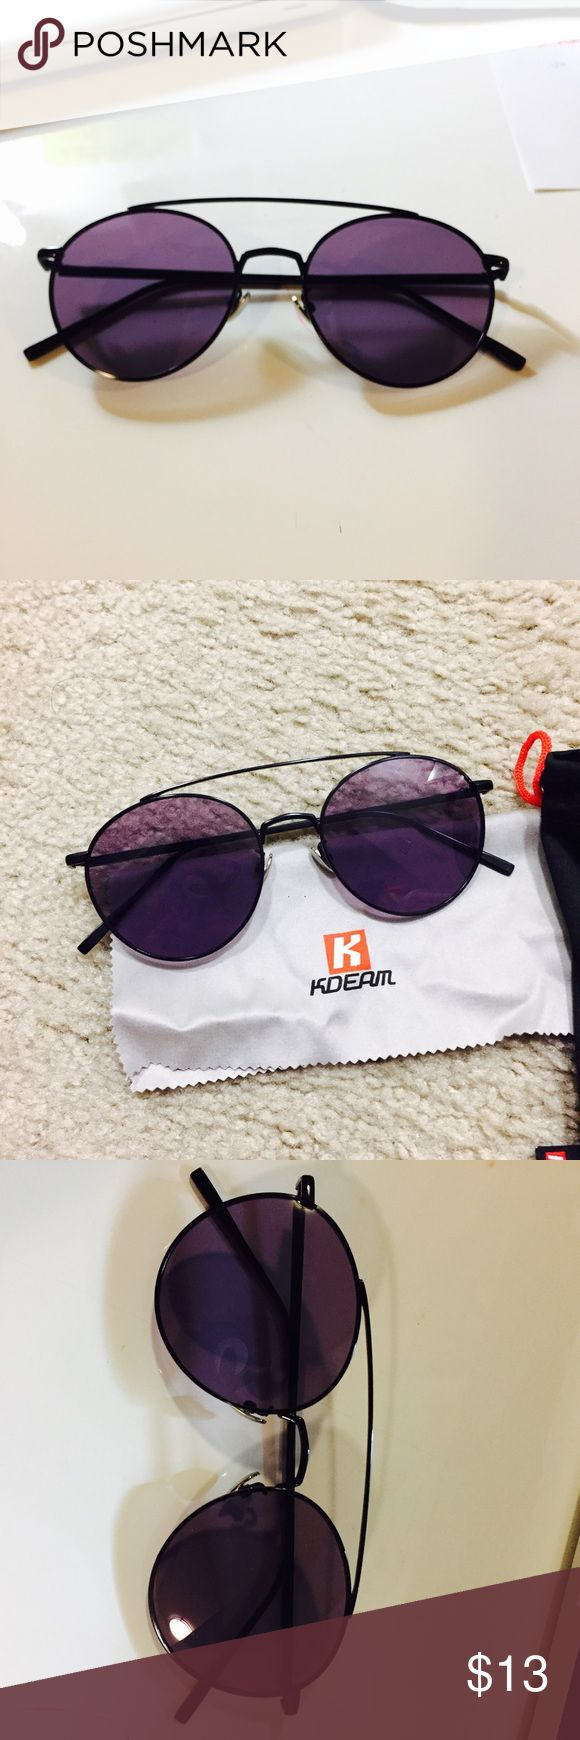 Purple round metal sunglasses brown bar ✨not brand listed Brand new✨purple tinted shade sunglasses UV protection 400 metal frames round shaped. Ray-Ban Accessories Sunglasses